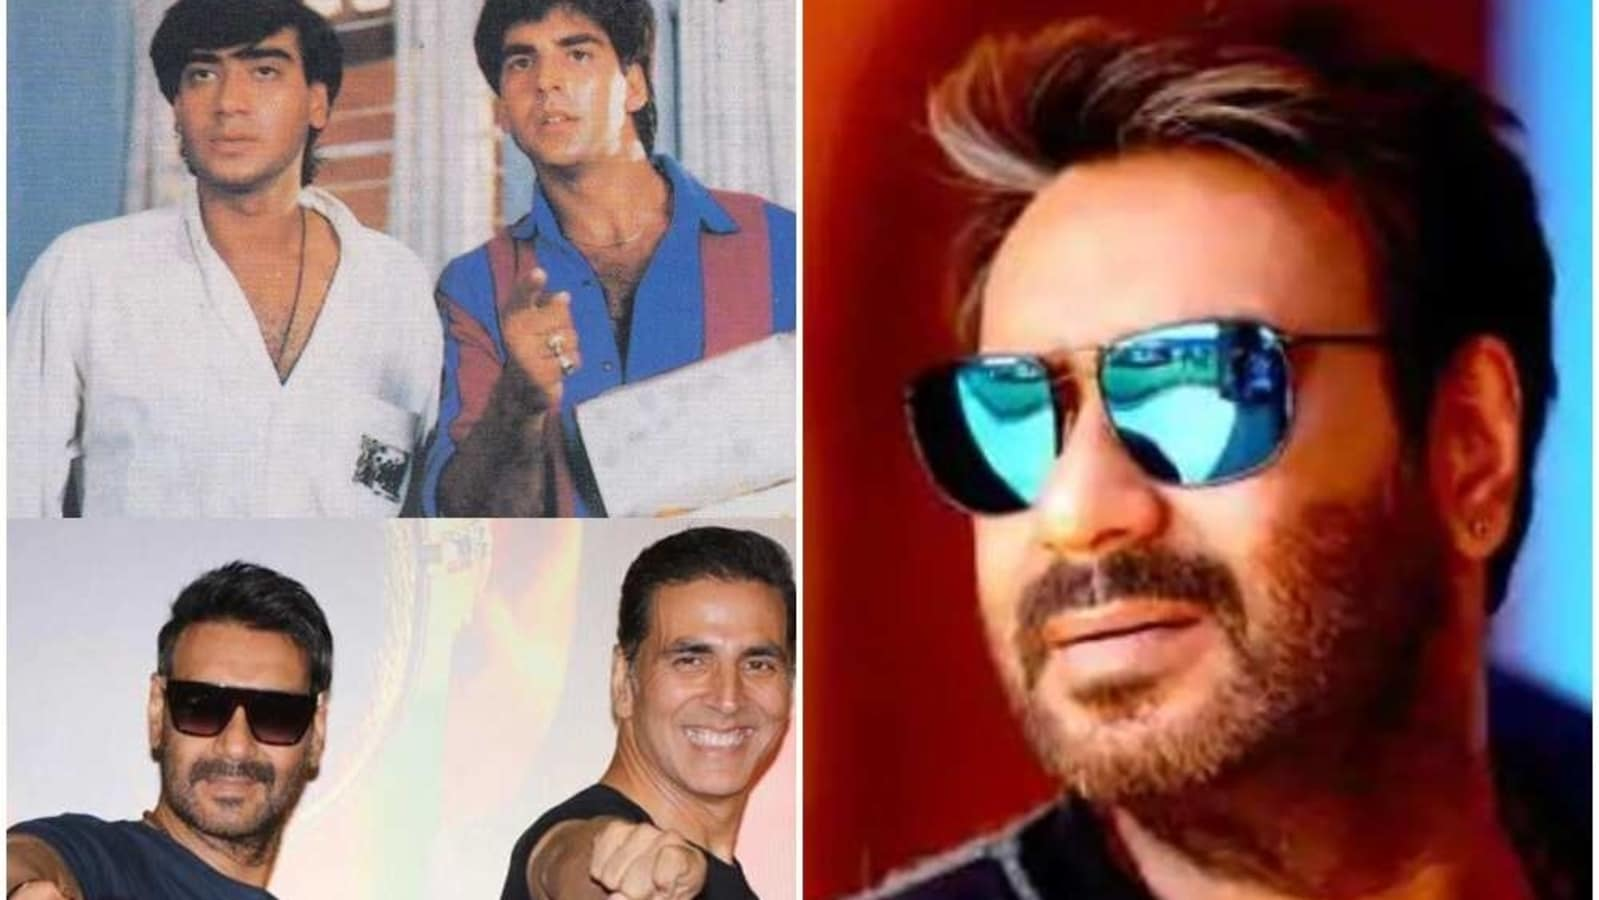 Akshay Kumar posts then-and-now pic to wish Ajay Devgn on his birthday: 'You've been an amazing co-star' - Hindustan Times